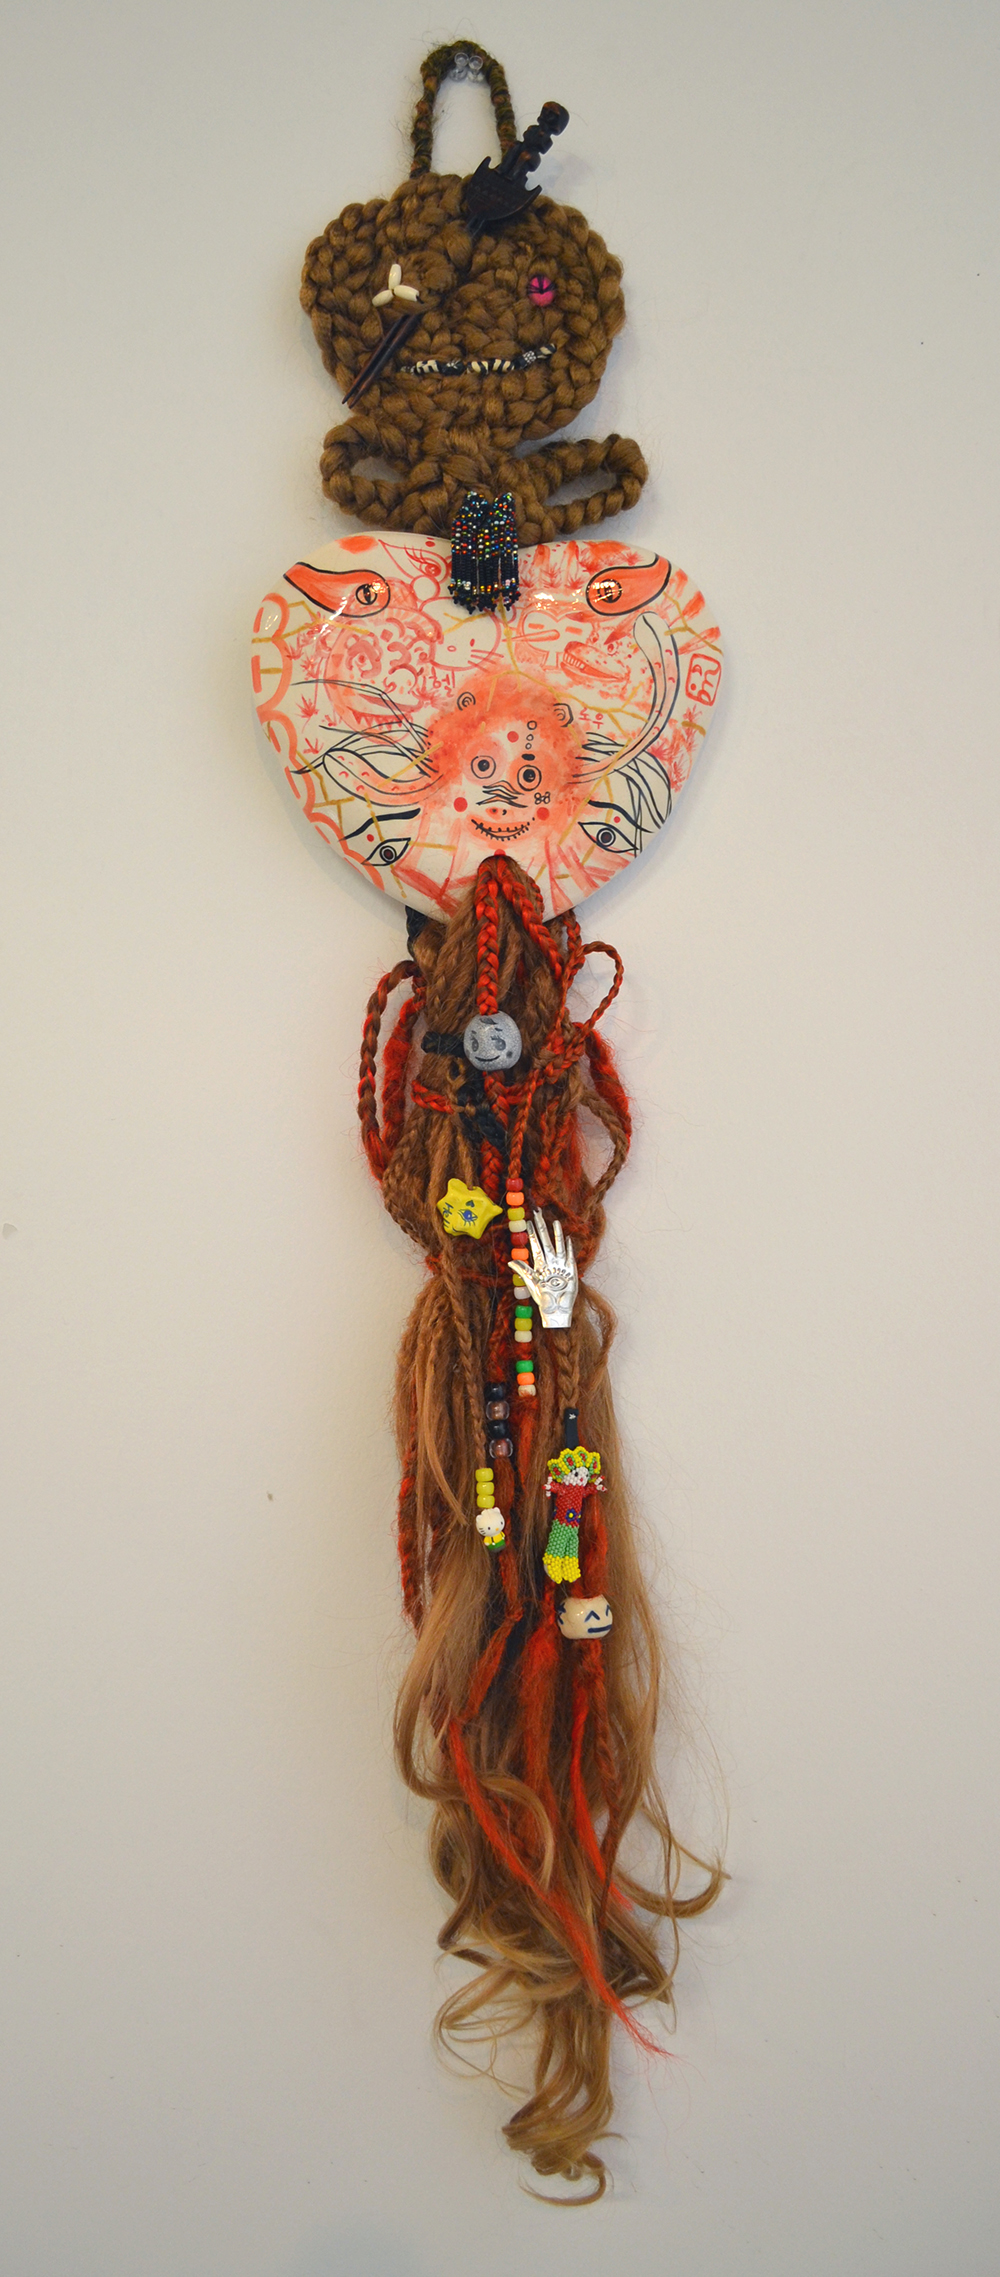 "Jiha Moon  Hello Monkey  Ceramic, hand-knotted synthetic hair, pony beads, found objects, thread 46"" x 9.25"" x 2"" 2013"